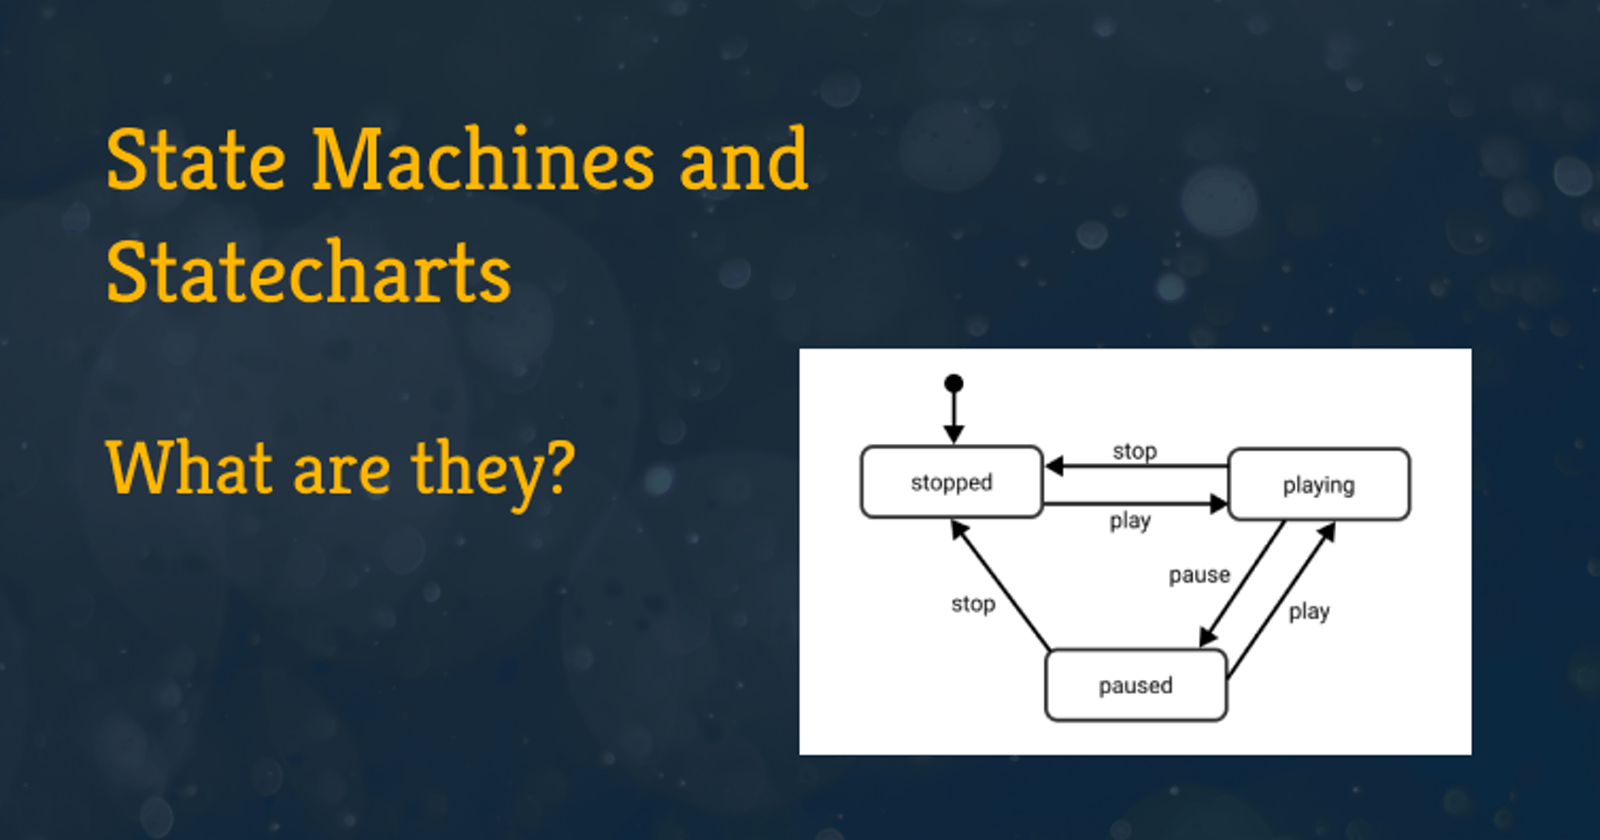 State Machines and Statecharts: What are they?